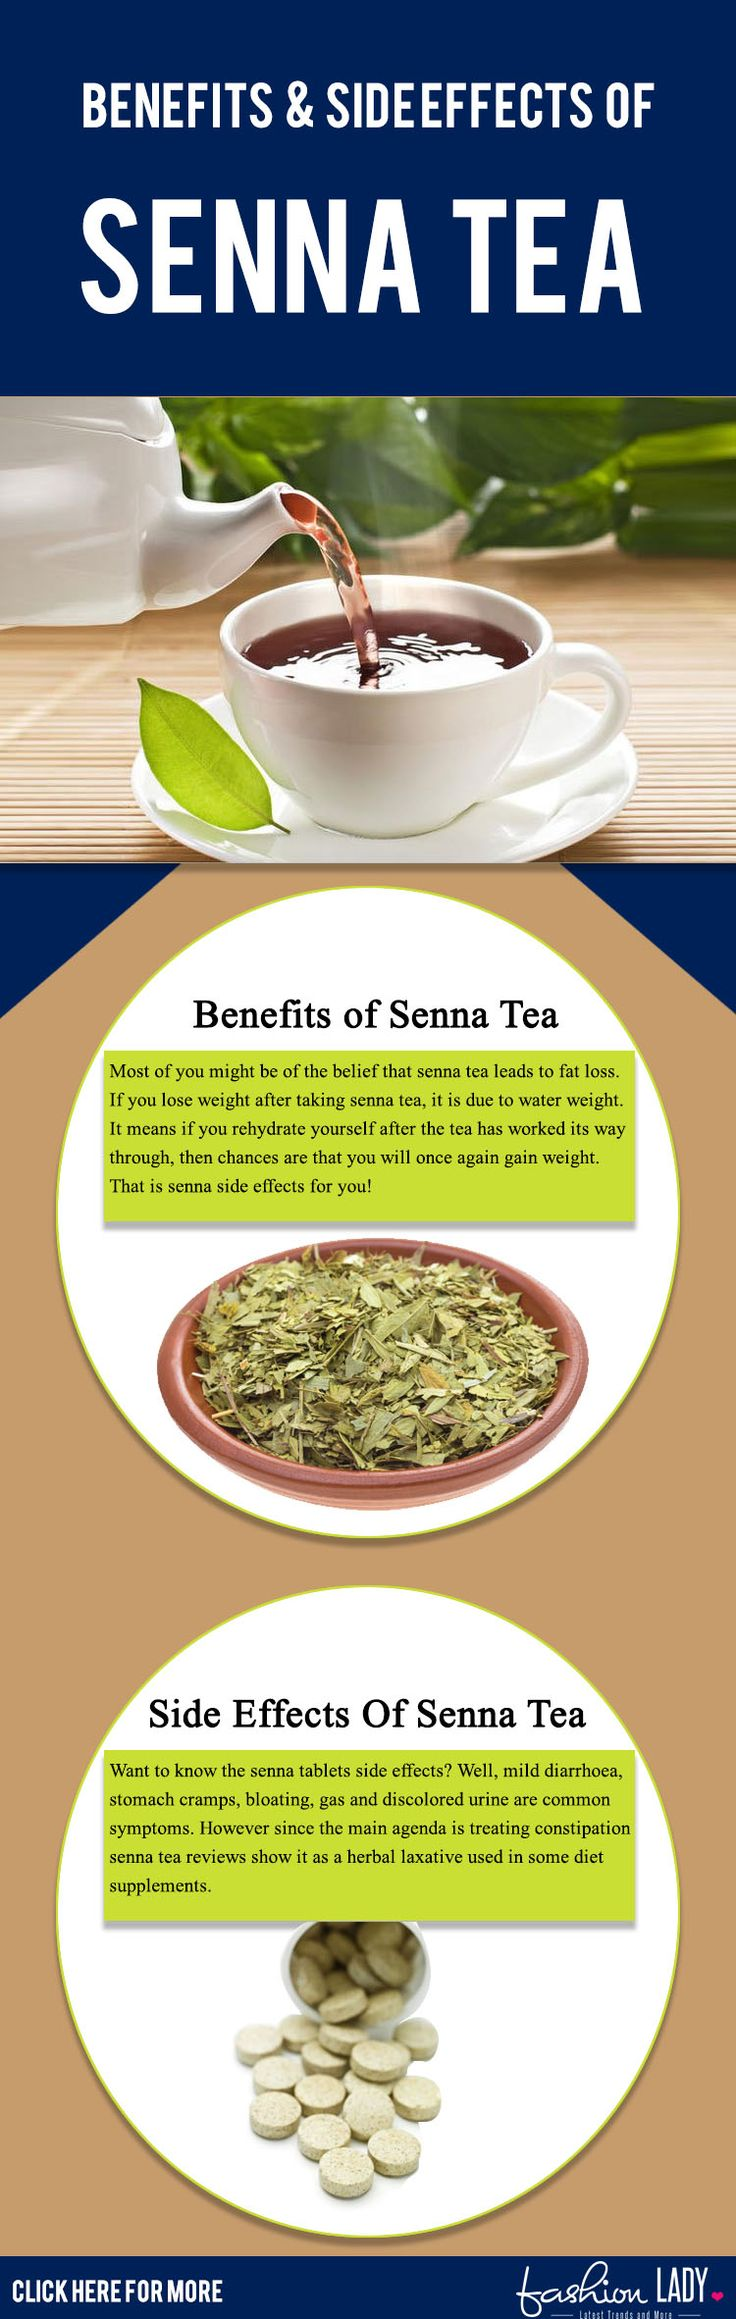 Benefits And Side Effects Of Senna Tea